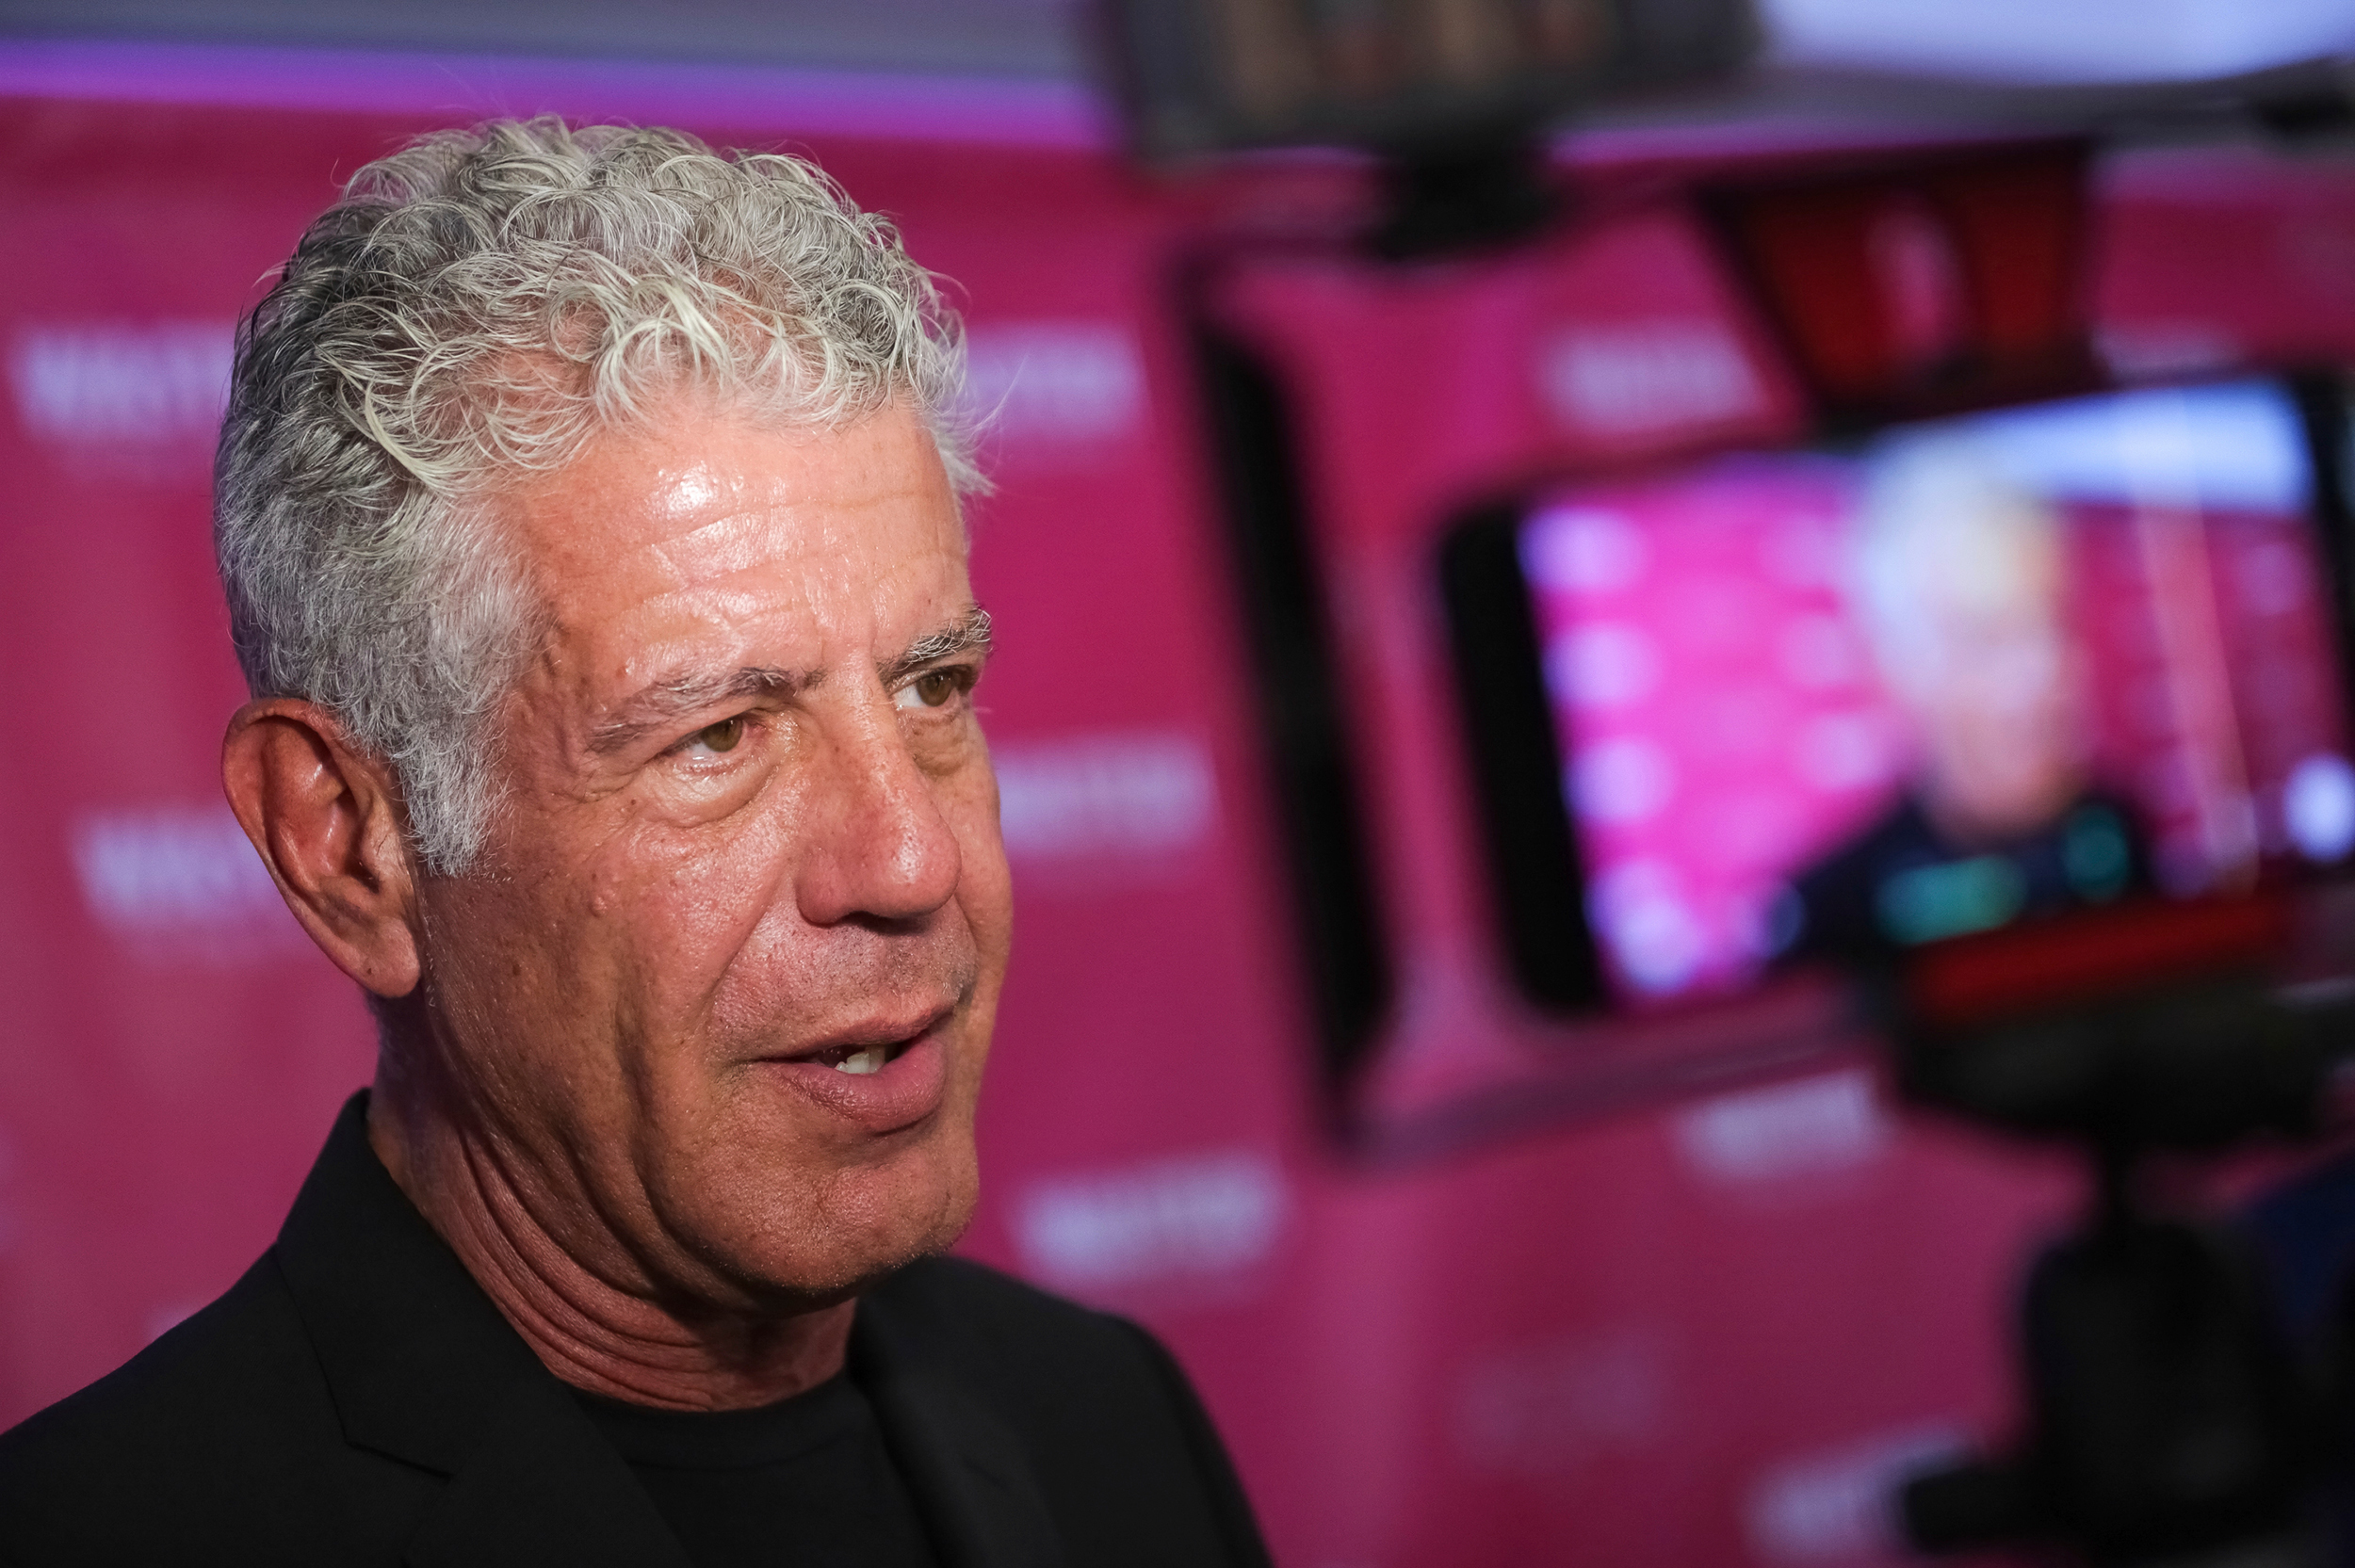 Executive producer and narrator chef Anthony Bourdain attends the premiere of <em>Wasted! The Story of Food Waste</em> in New York City.